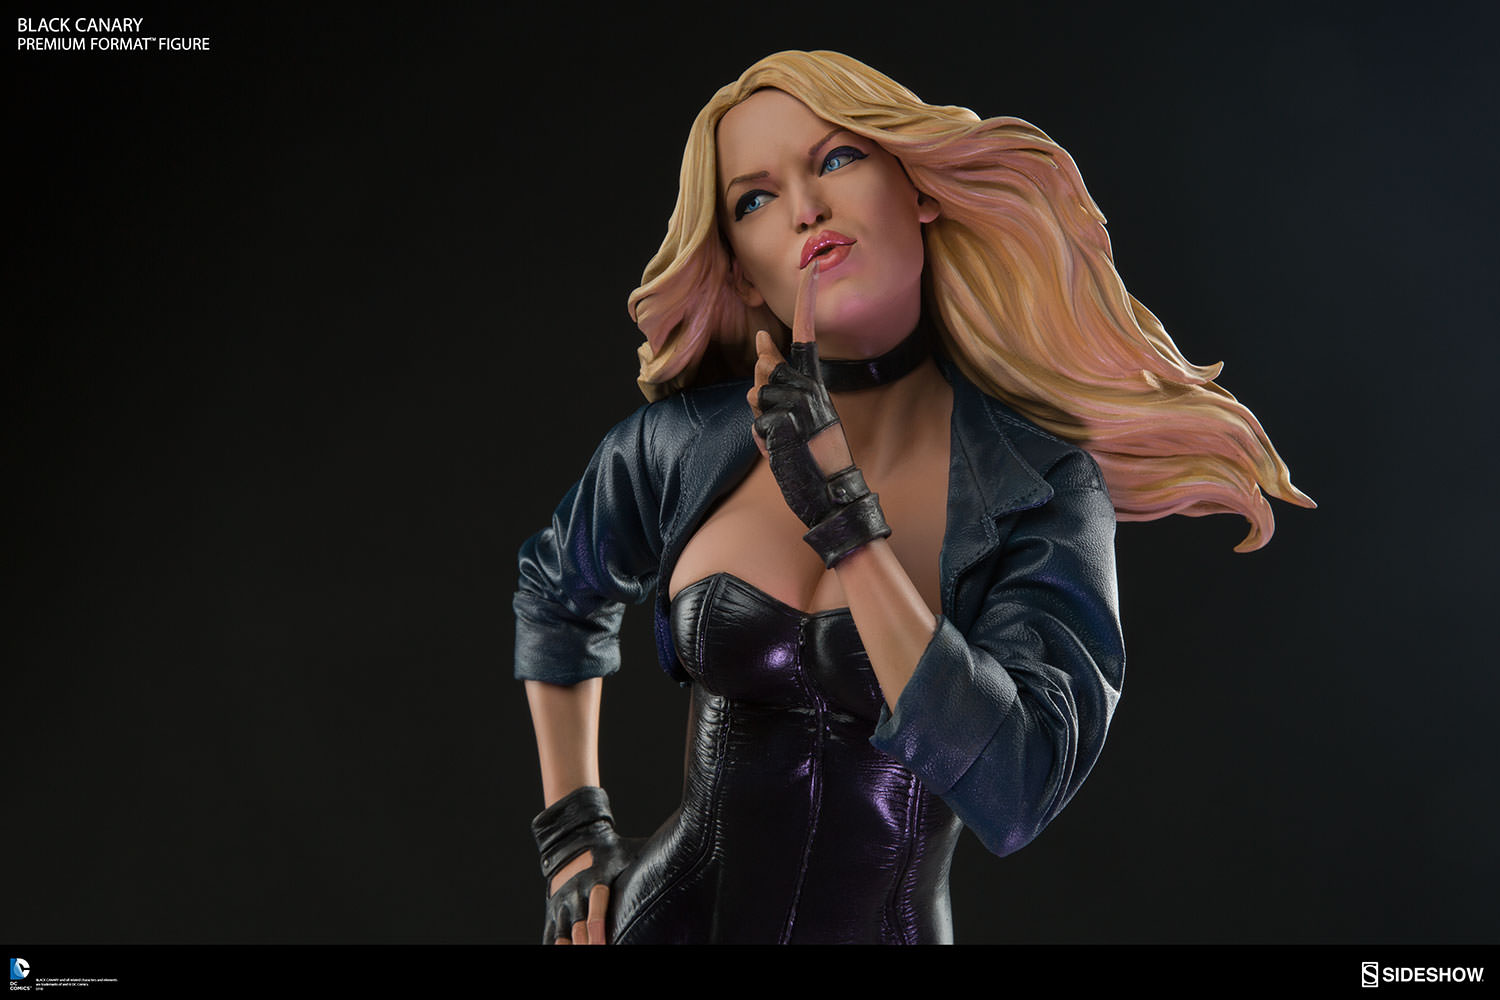 Sideshow Black Canary Premium Format Figure Pre-Orders